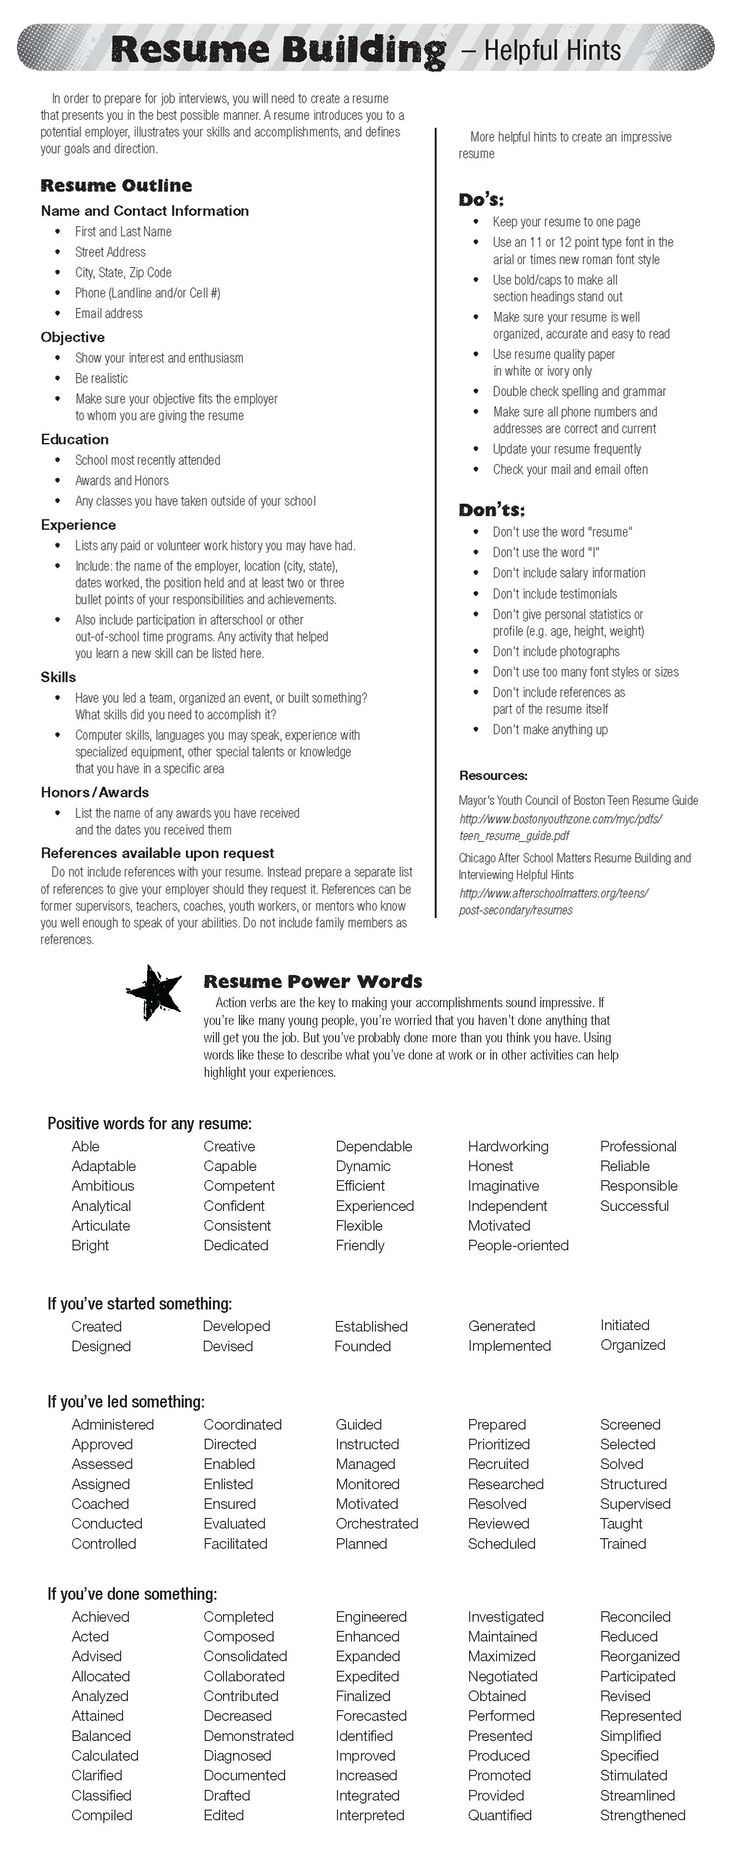 Opposenewapstandardsus  Fascinating  Ideas About Resume On Pinterest  Cv Format Resume Cv And  With Marvelous  Ideas About Resume On Pinterest  Cv Format Resume Cv And Resume Templates With Agreeable Example Of A Federal Resume Also Resume Template Office In Addition Resume Paragraph And Resume Graphic As Well As Automotive Service Manager Resume Additionally Template For Resume Word From Pinterestcom With Opposenewapstandardsus  Marvelous  Ideas About Resume On Pinterest  Cv Format Resume Cv And  With Agreeable  Ideas About Resume On Pinterest  Cv Format Resume Cv And Resume Templates And Fascinating Example Of A Federal Resume Also Resume Template Office In Addition Resume Paragraph From Pinterestcom